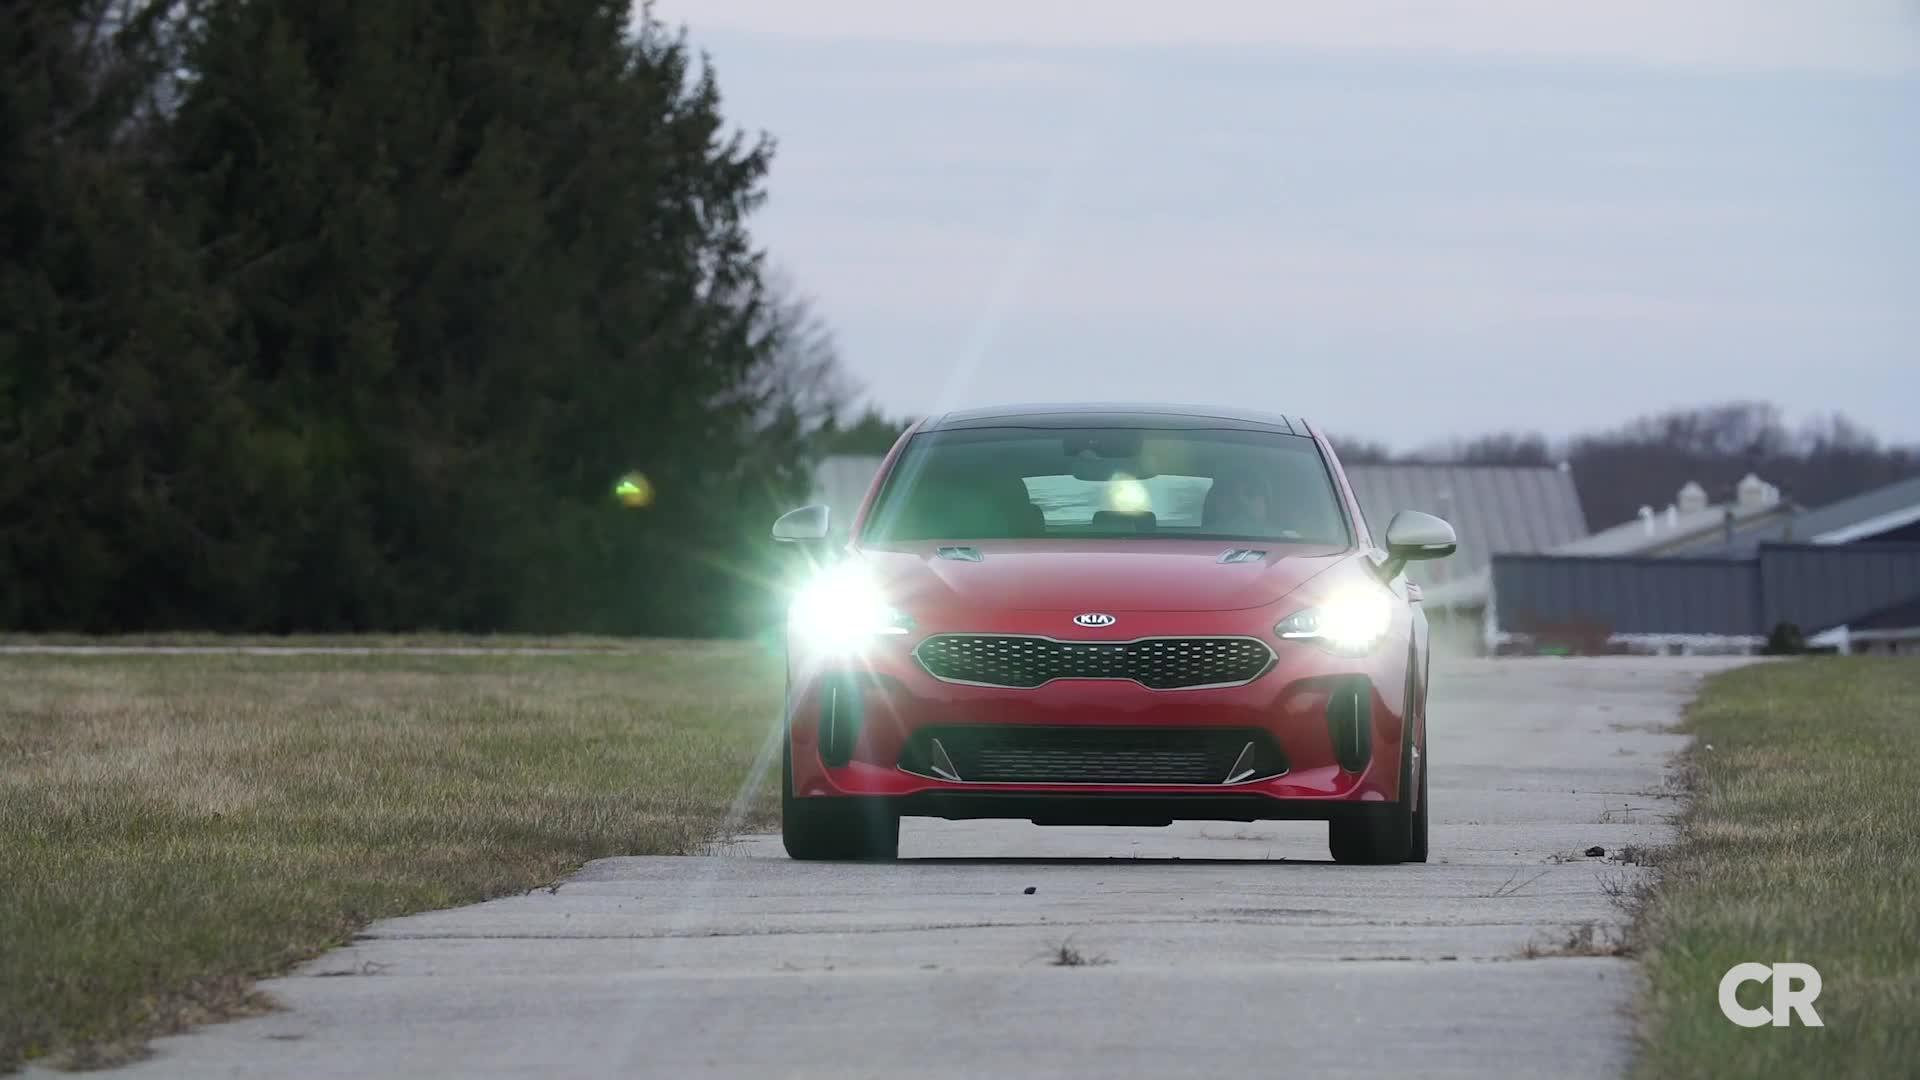 2018 Kia Stinger Review: Striving to Be Sporty